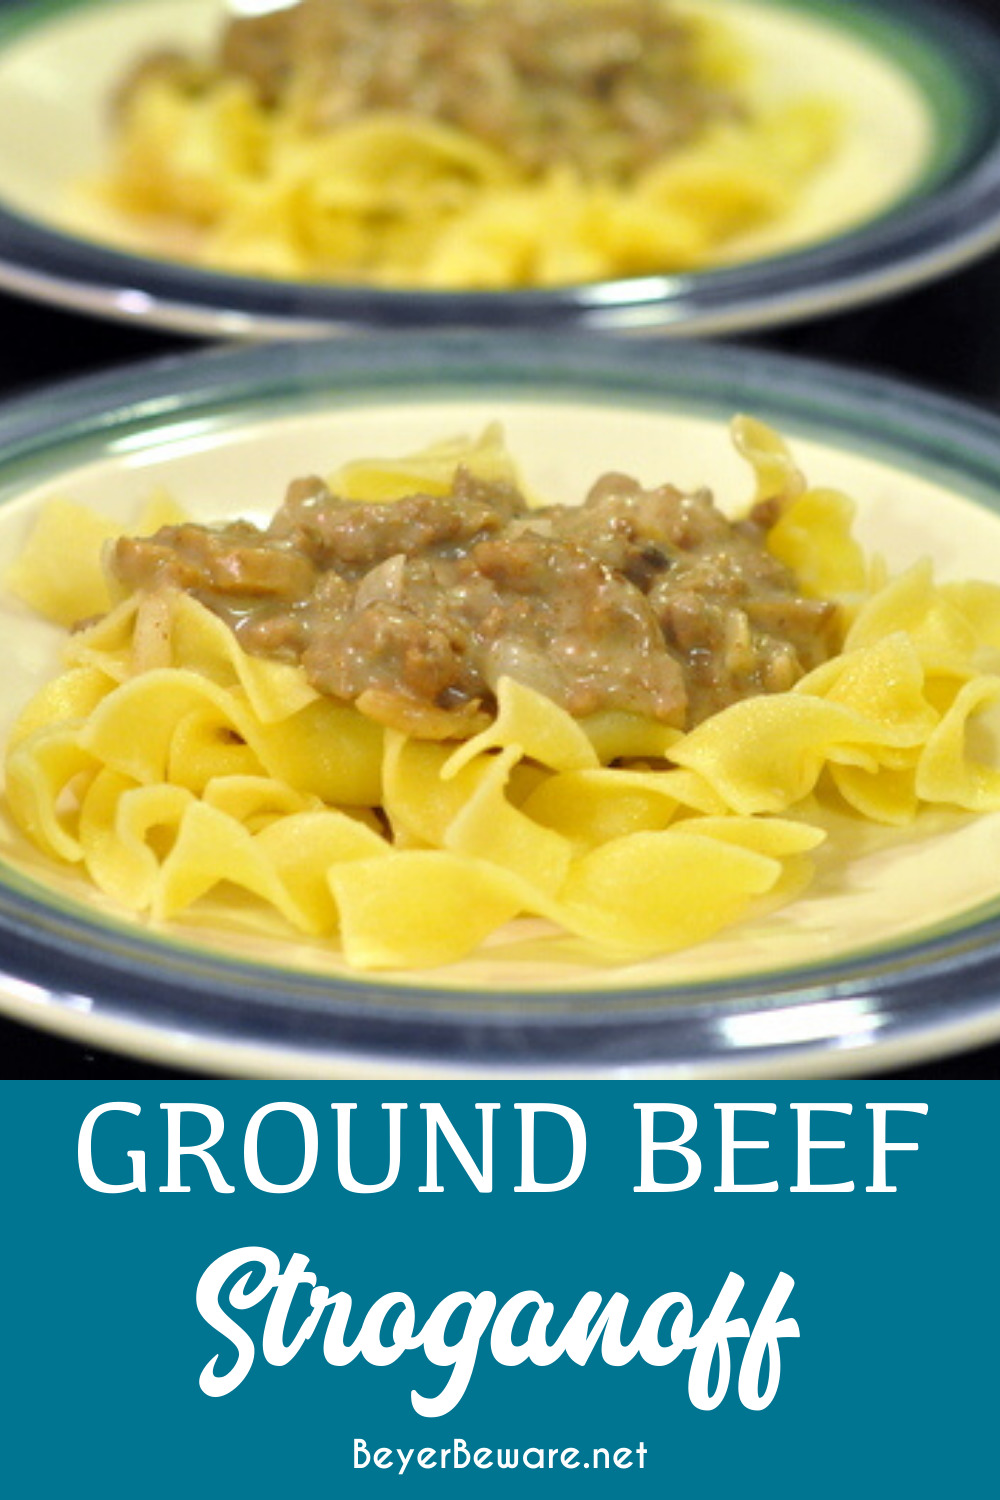 Ground beef stroganoff is a quick weeknight meal that uses ground beef combined with onions, mushrooms, cream of mushroom, and sour cream then served over noodles and rice.